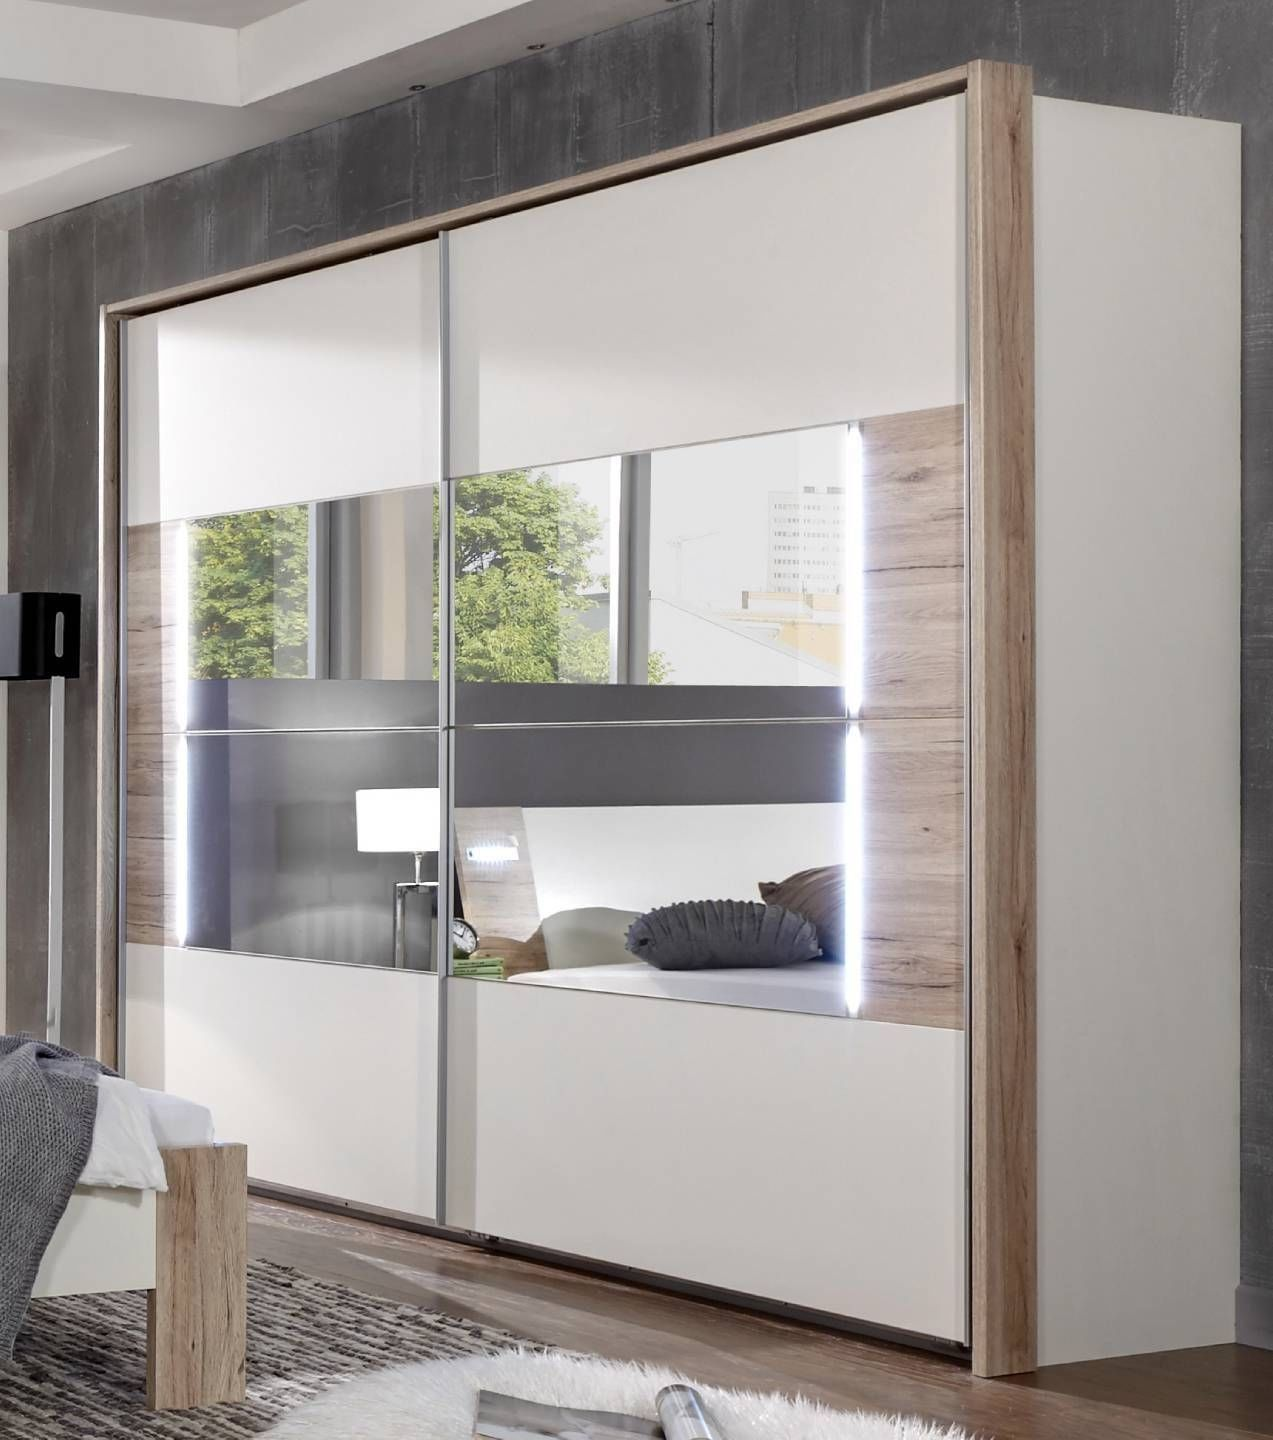 German Downtown White Oak 270cm Sliding Door Mirrored Wardrobe